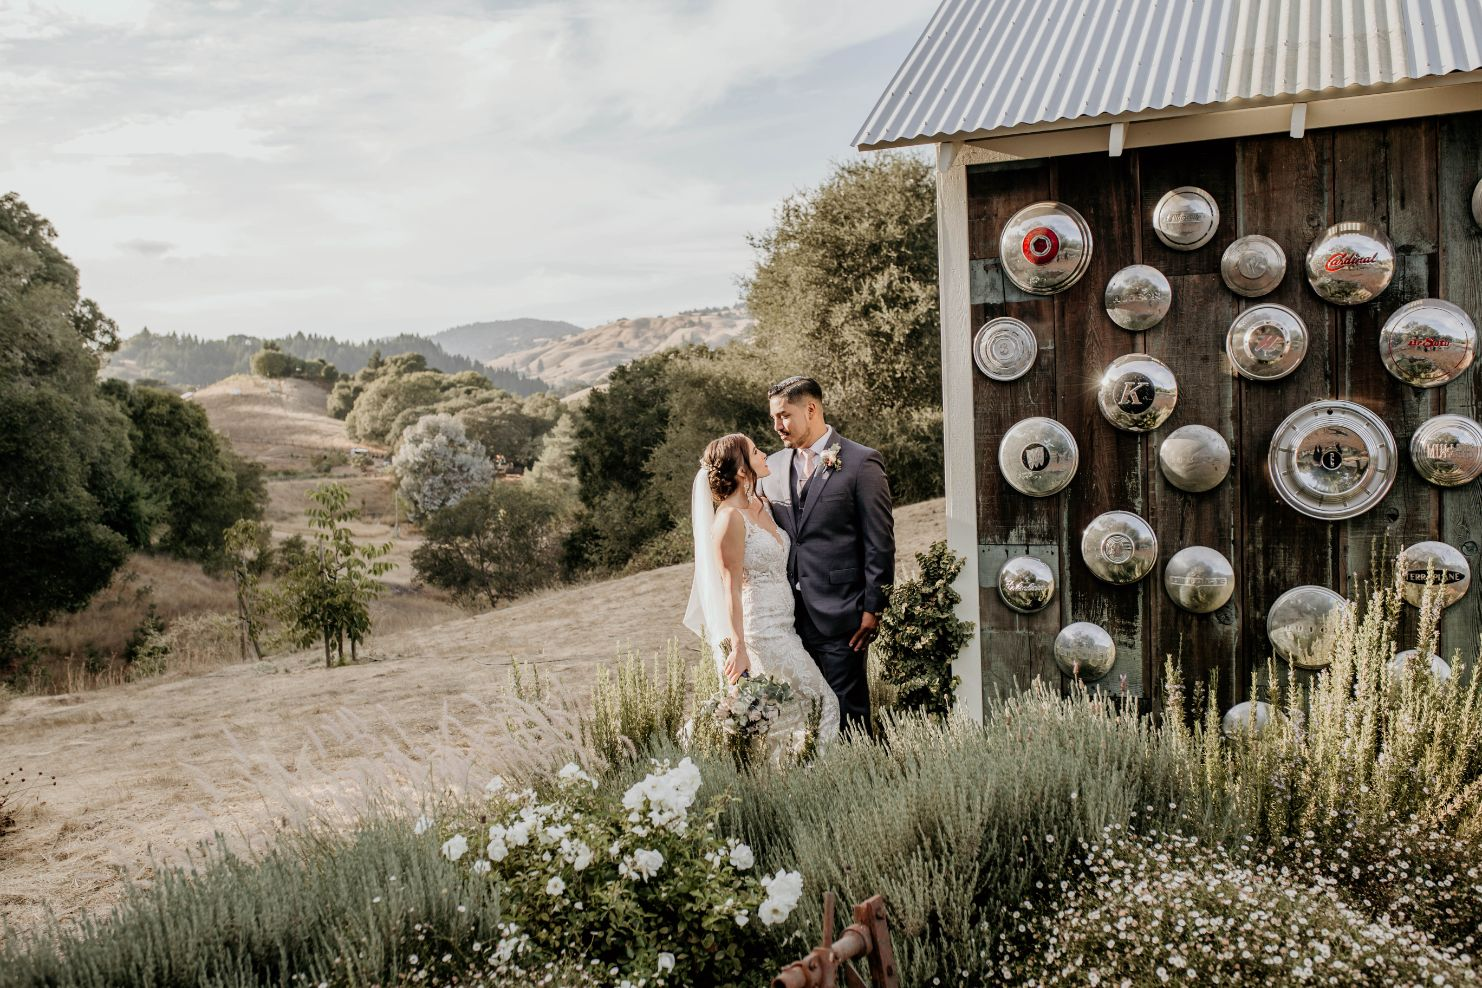 mountain house estate northern california wine country wedding venue barn rustic chic Liz Valentine Photography September18 421 1